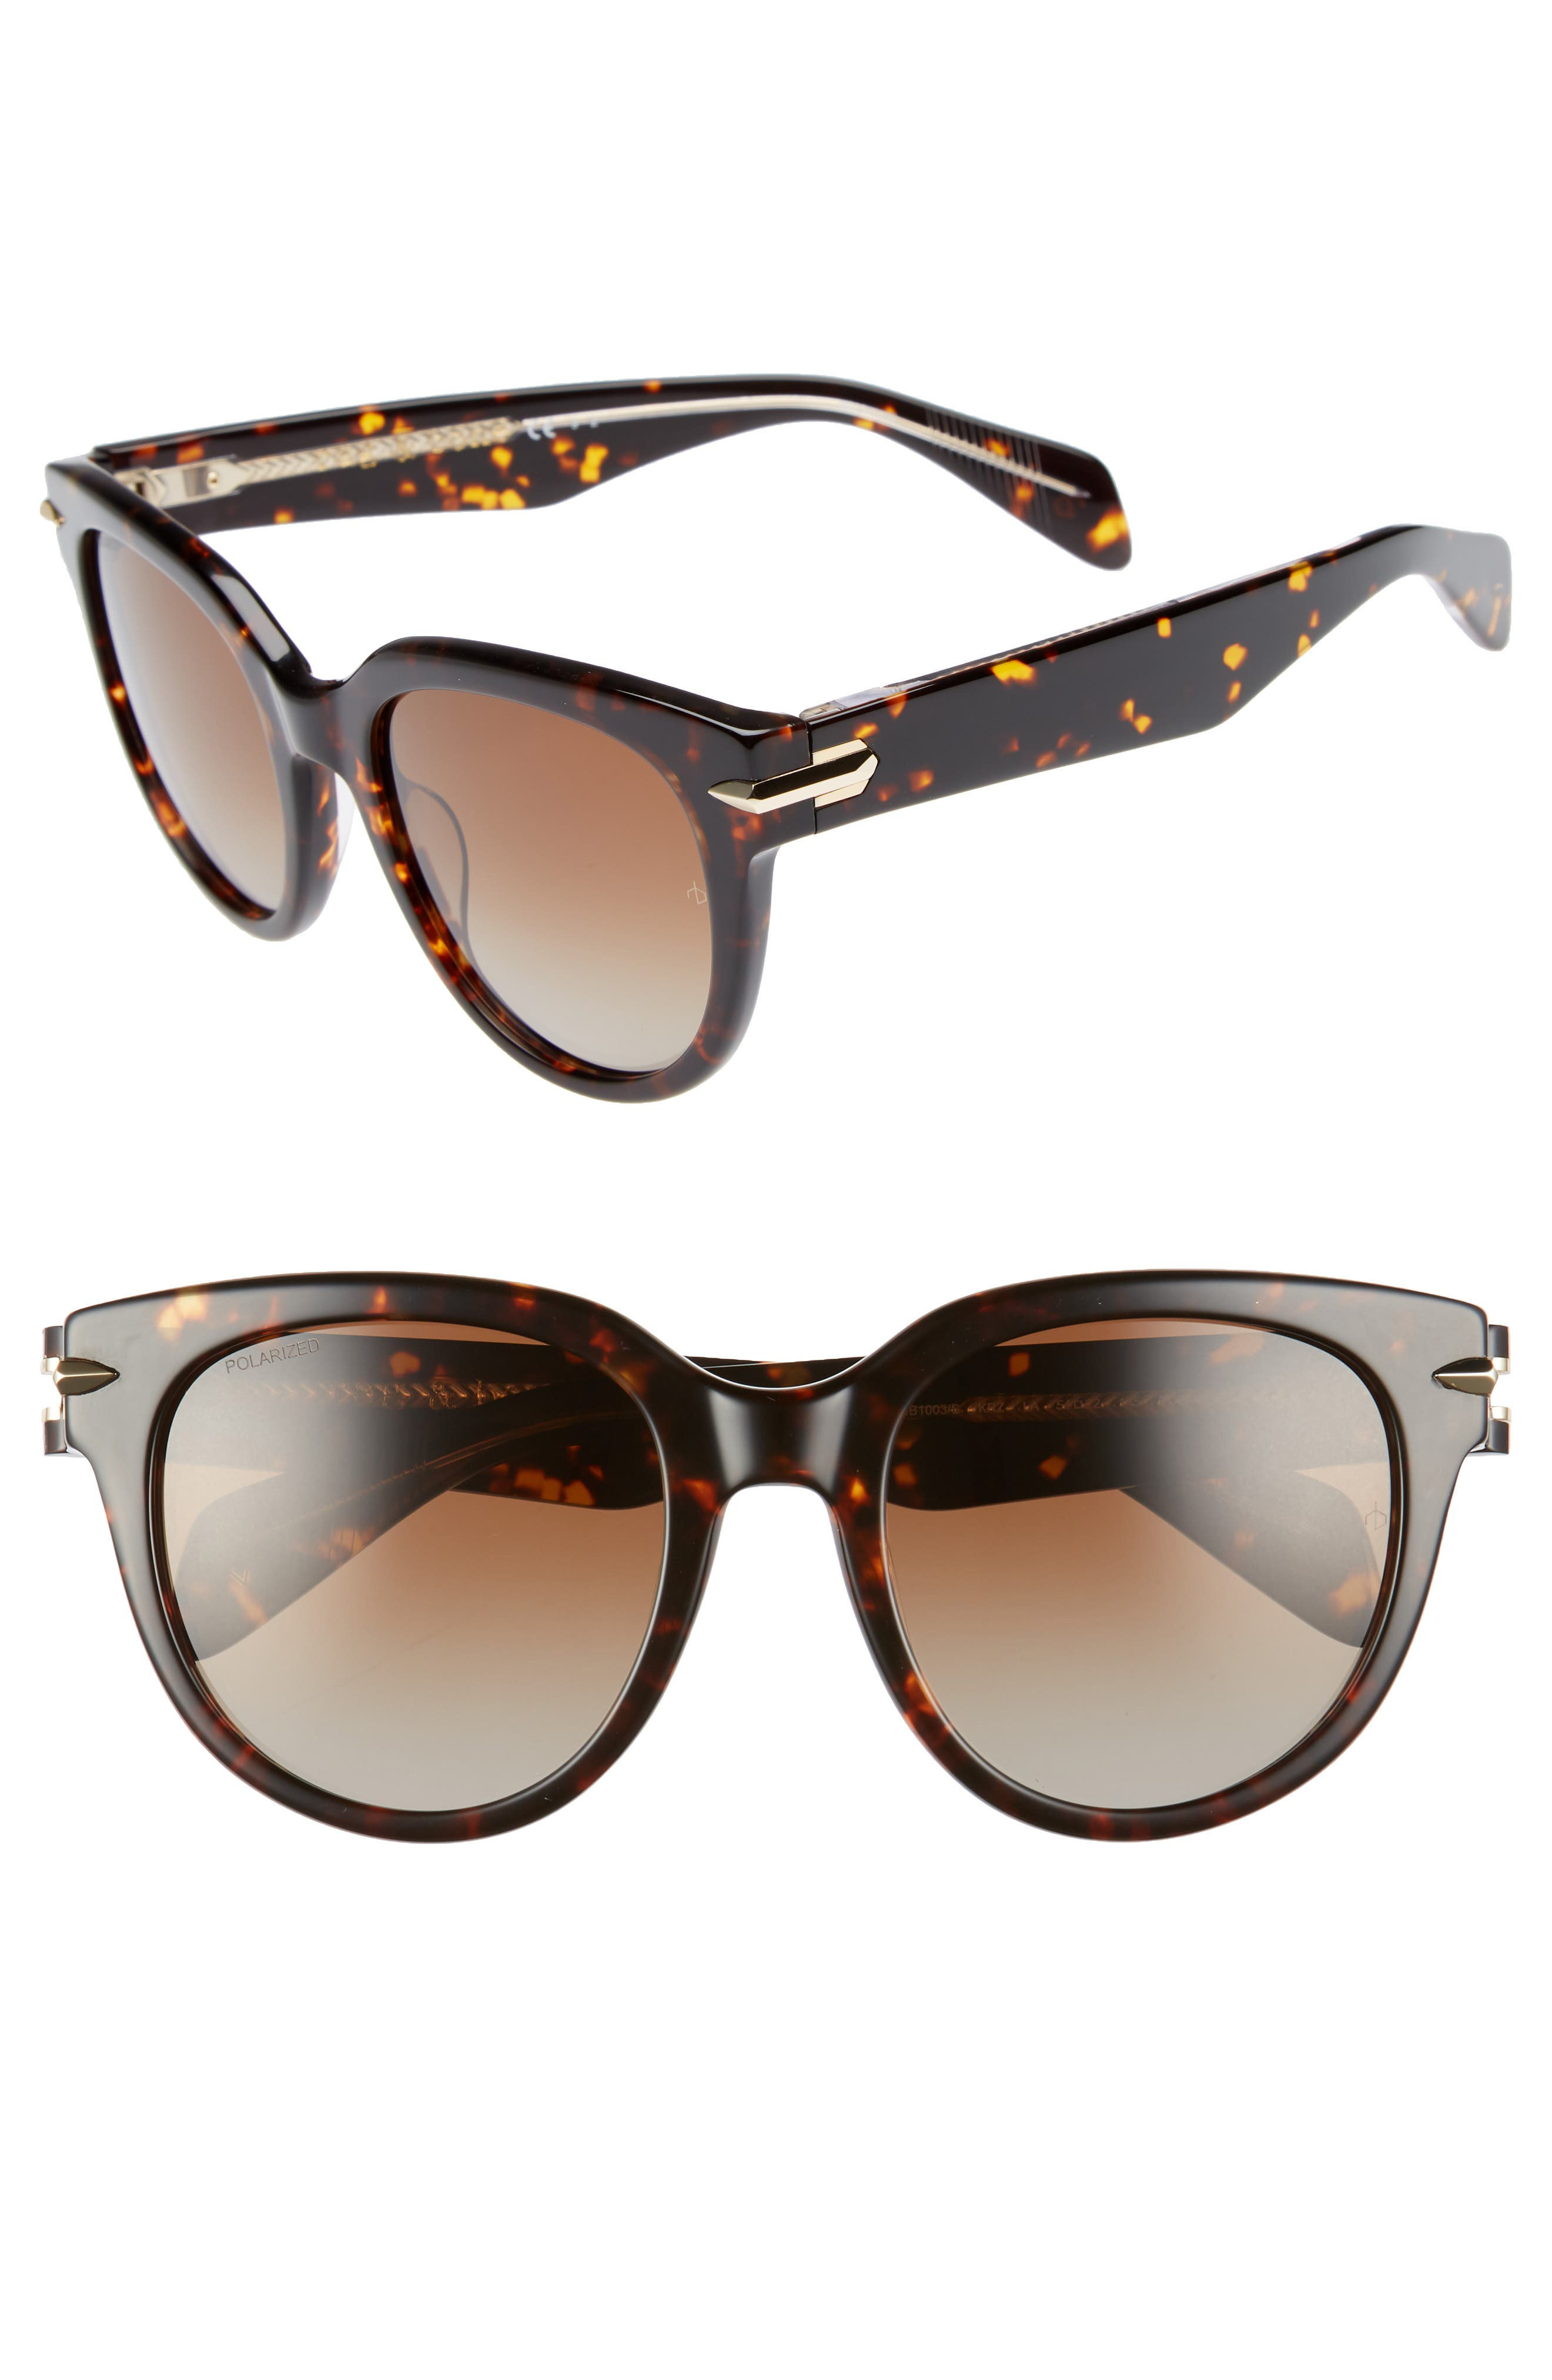 54mm Round Sunglasses,                         Main,                         color, Havana/ Crystal